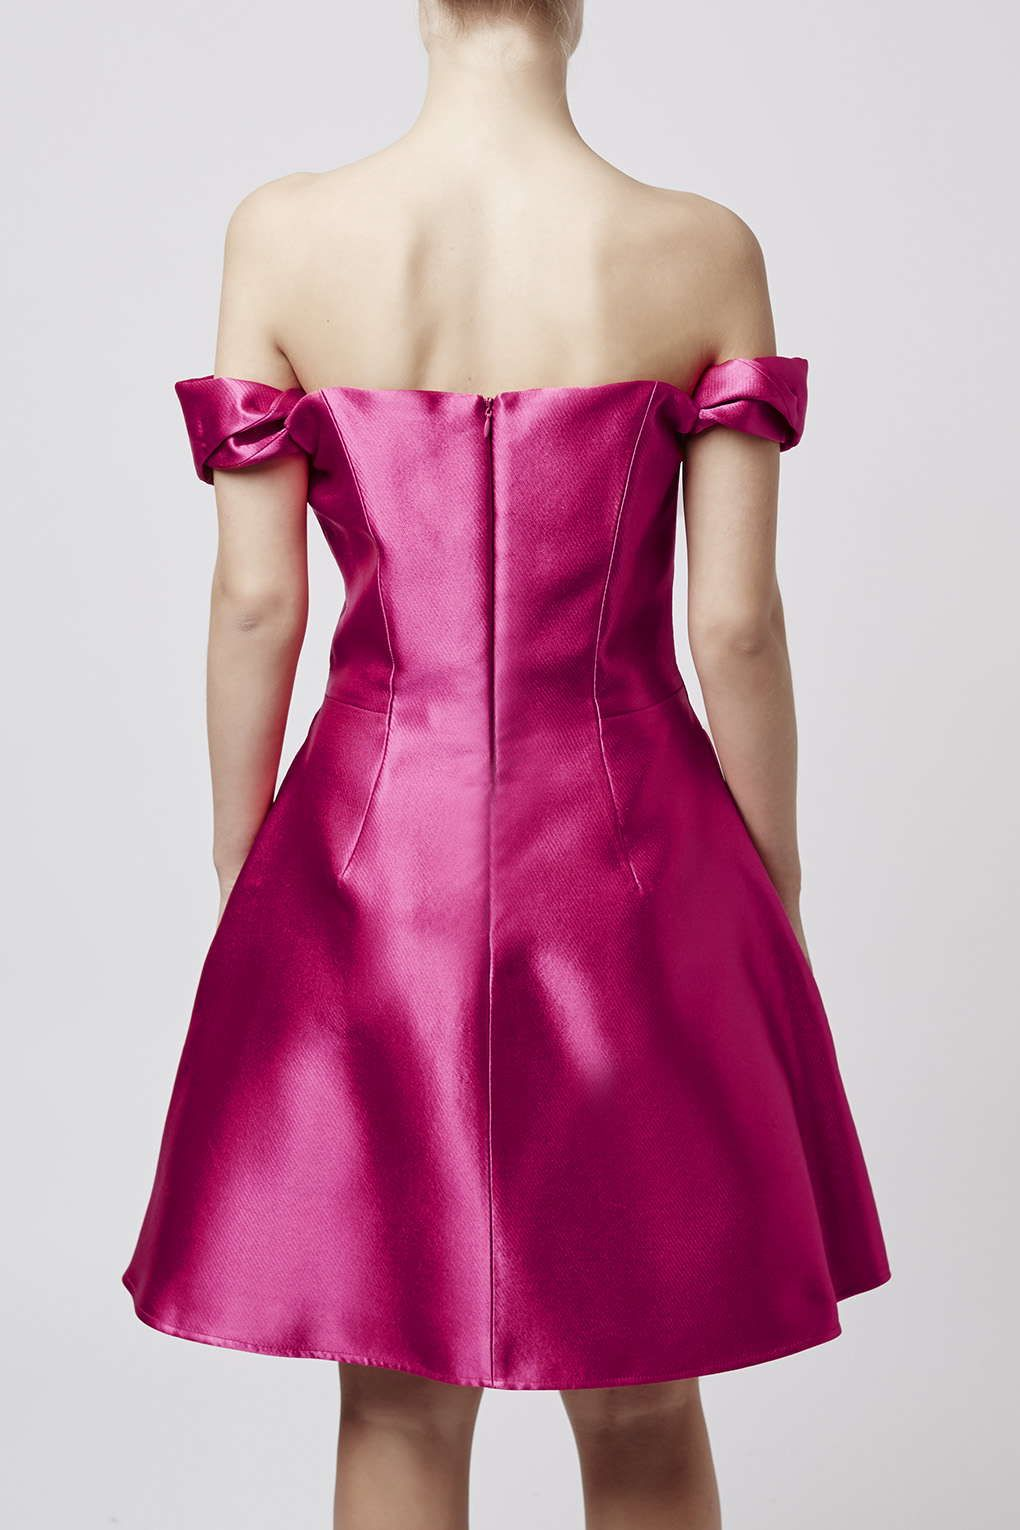 Shiny fabric in Fuschia makes our off shoulder dress the stand out party look of the season.